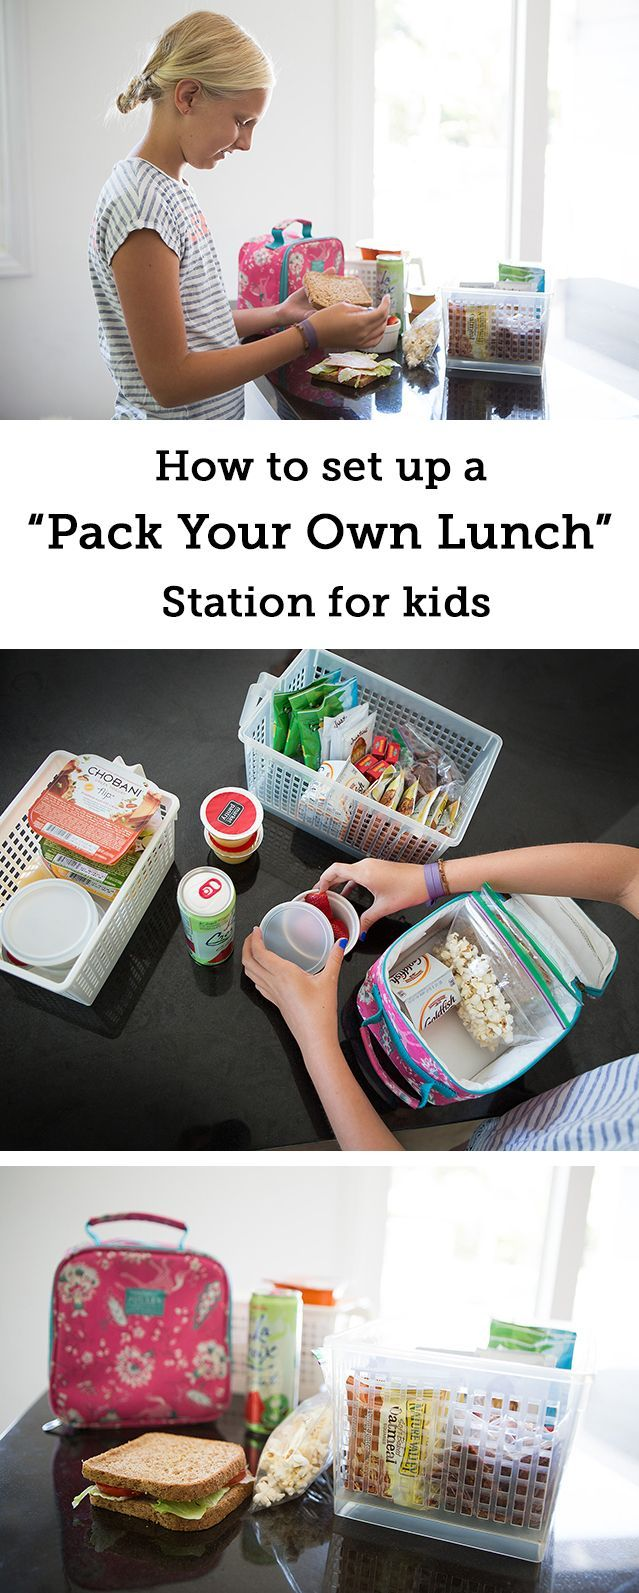 316 Best Kid Food: Kids Cooking, Eating, And Learning! Images On Pinterest